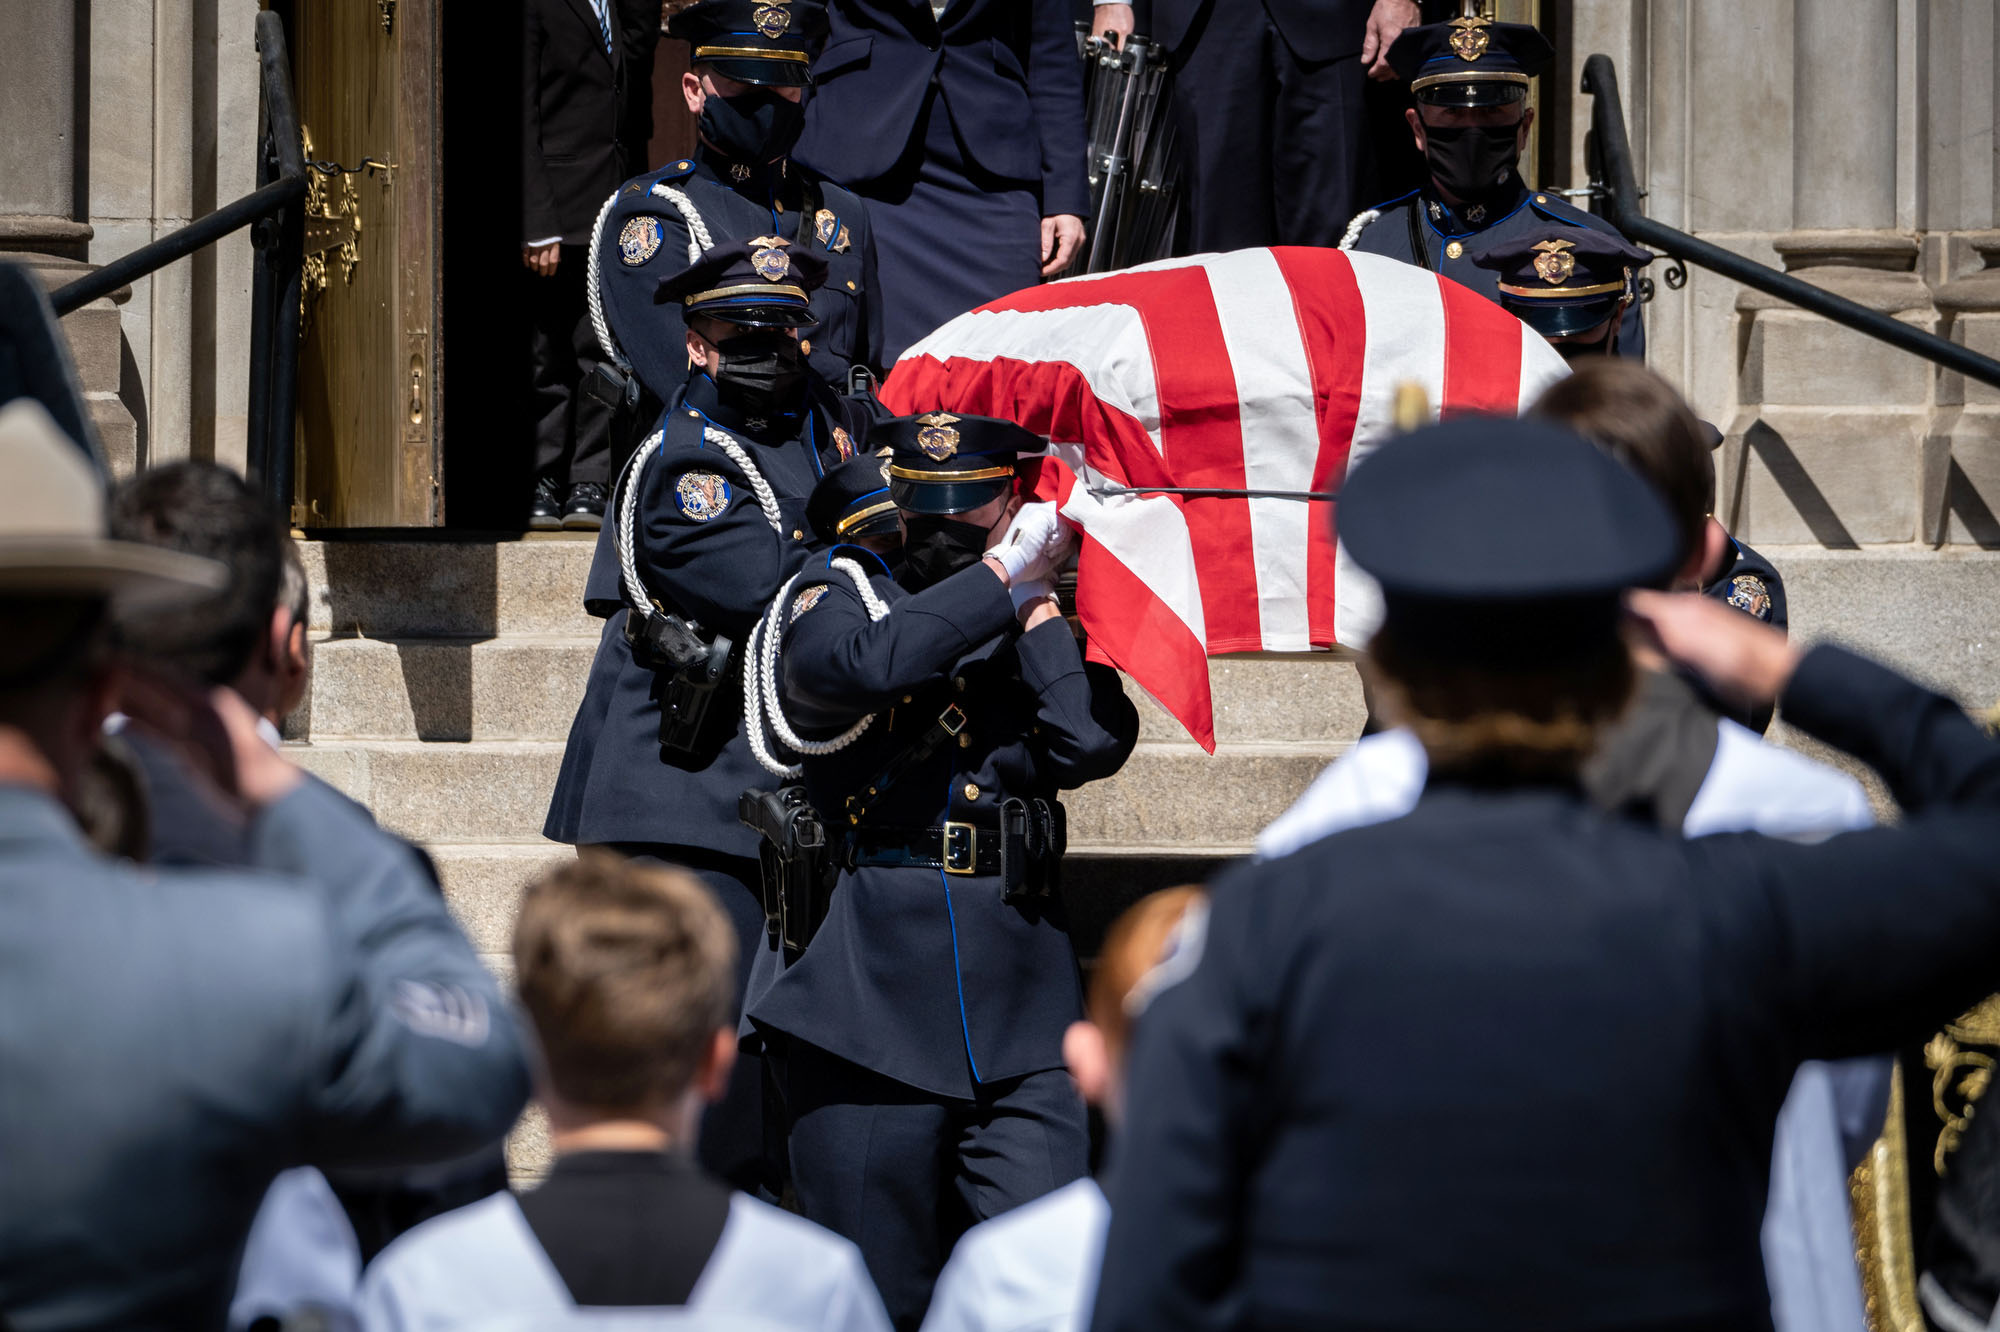 Denver Police Honor Guard members carry the casket of Boulder Police Officer Eric Talley, 51, who was killed in last week's King Soopers shooting in Boulder, down the steps of the Cathedral Basilica of the Immaculate Conception in Denver, Colorado on Monday, March 29, 2021.